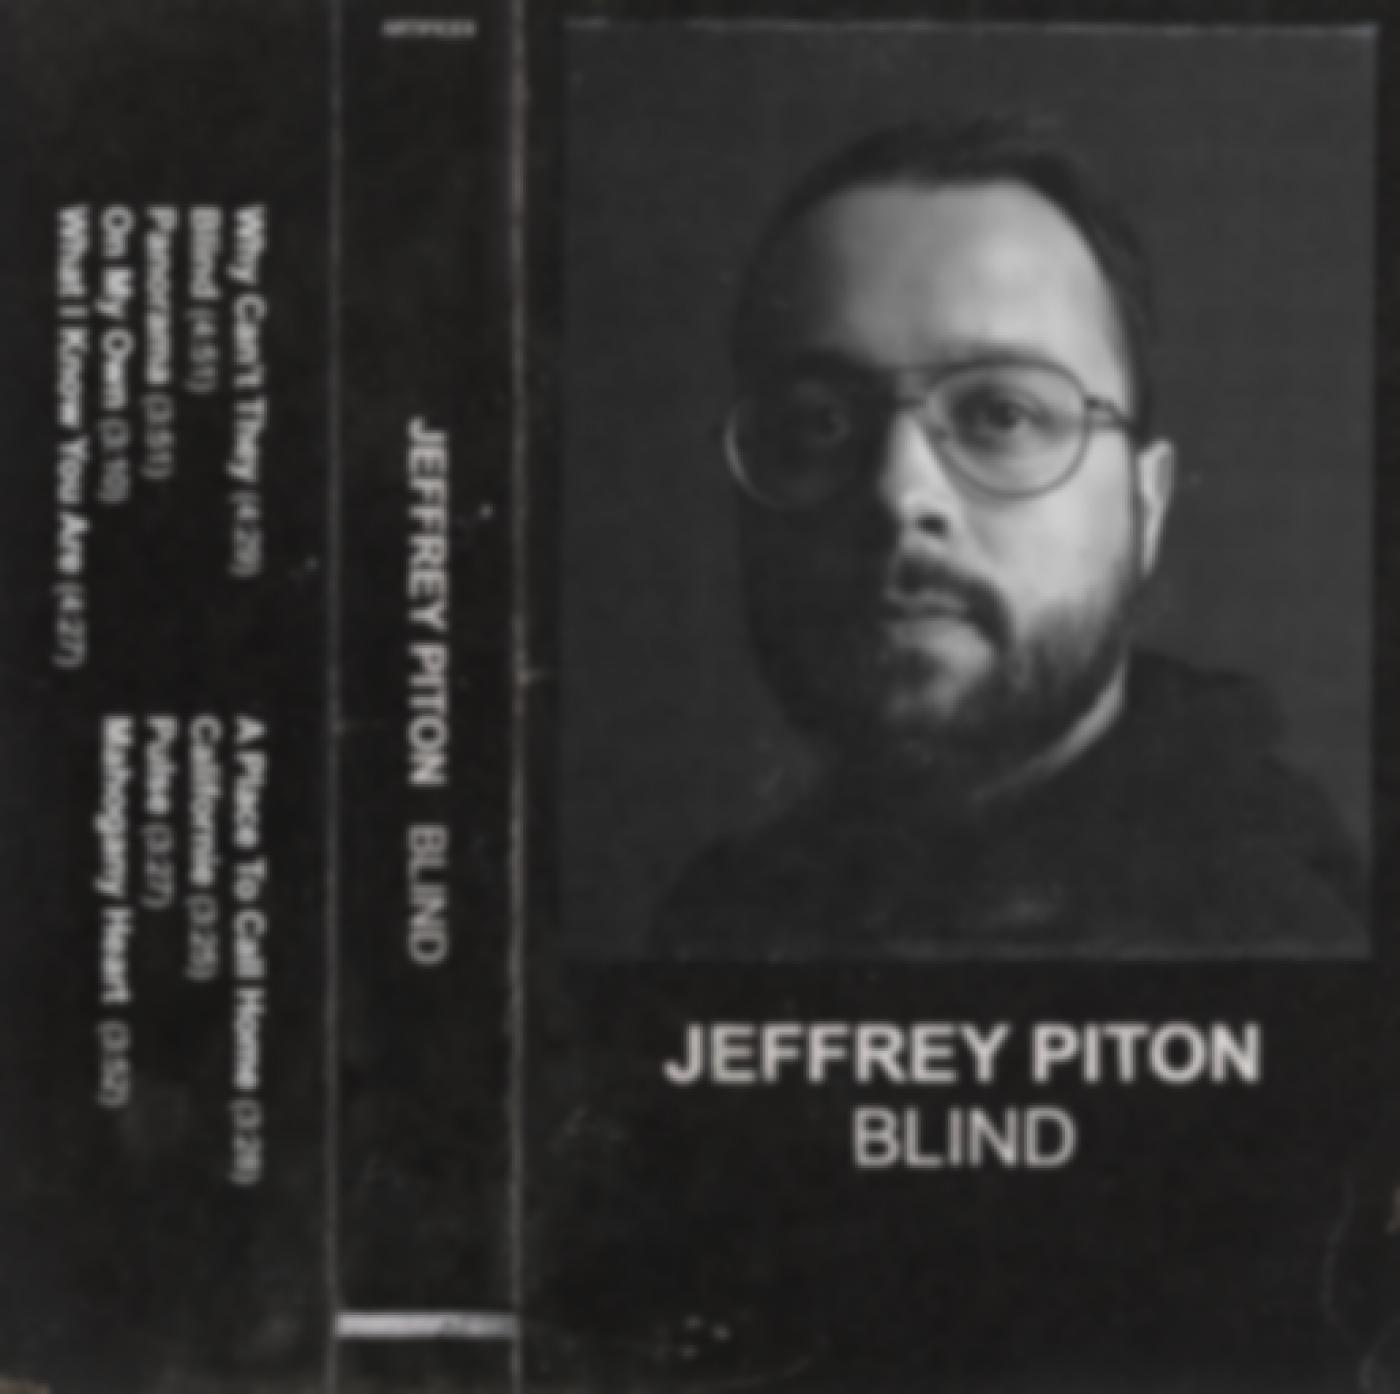 Piton, Jeffrey – Blind